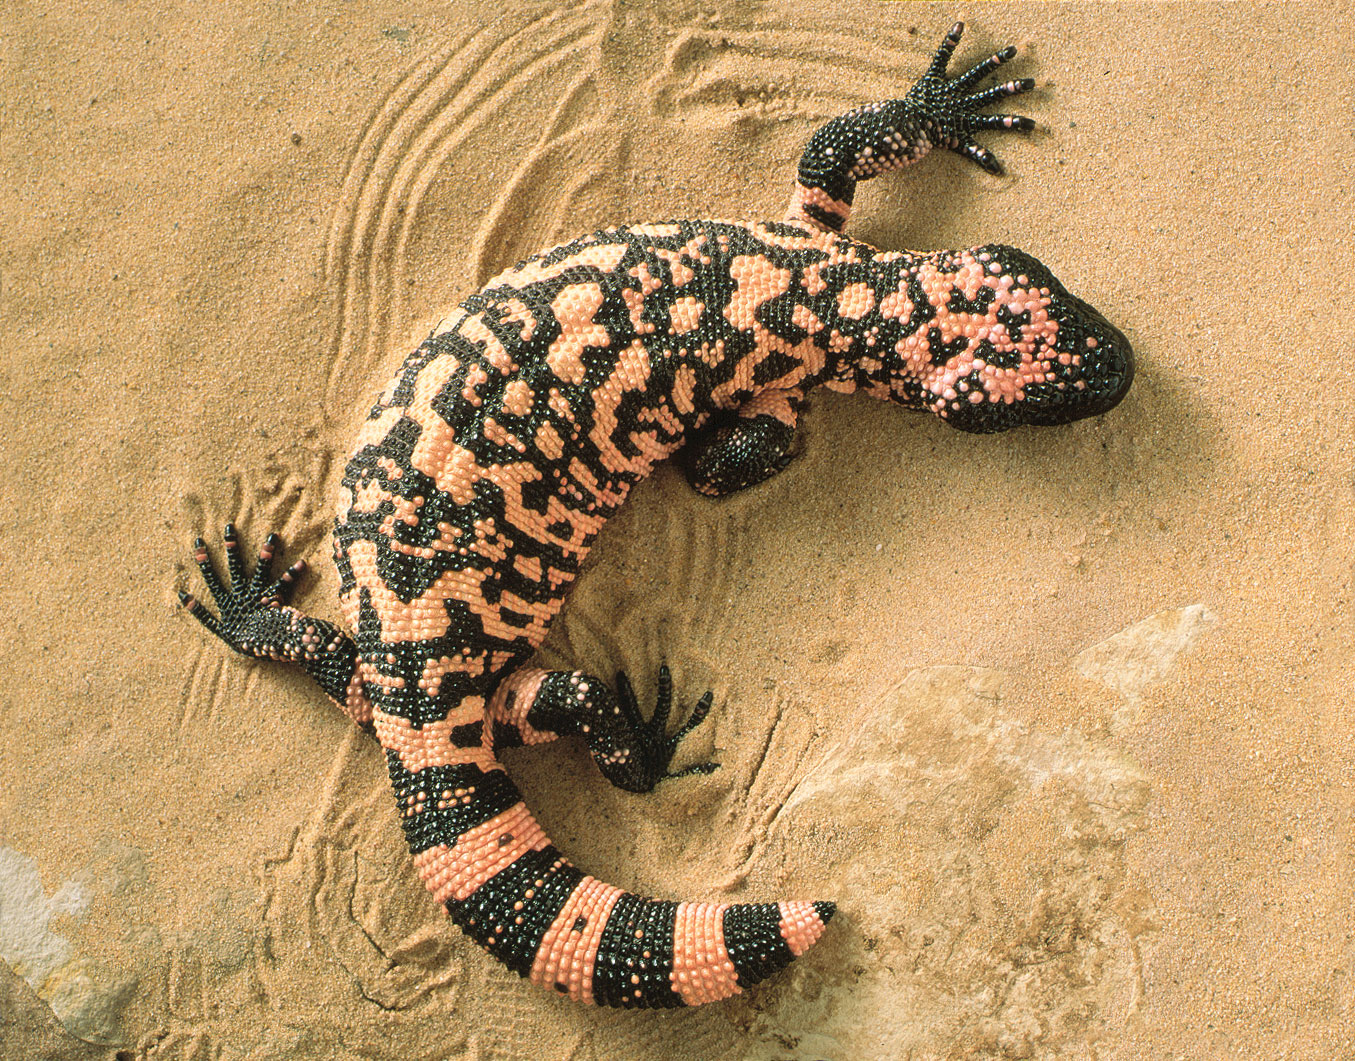 Gila Monster.